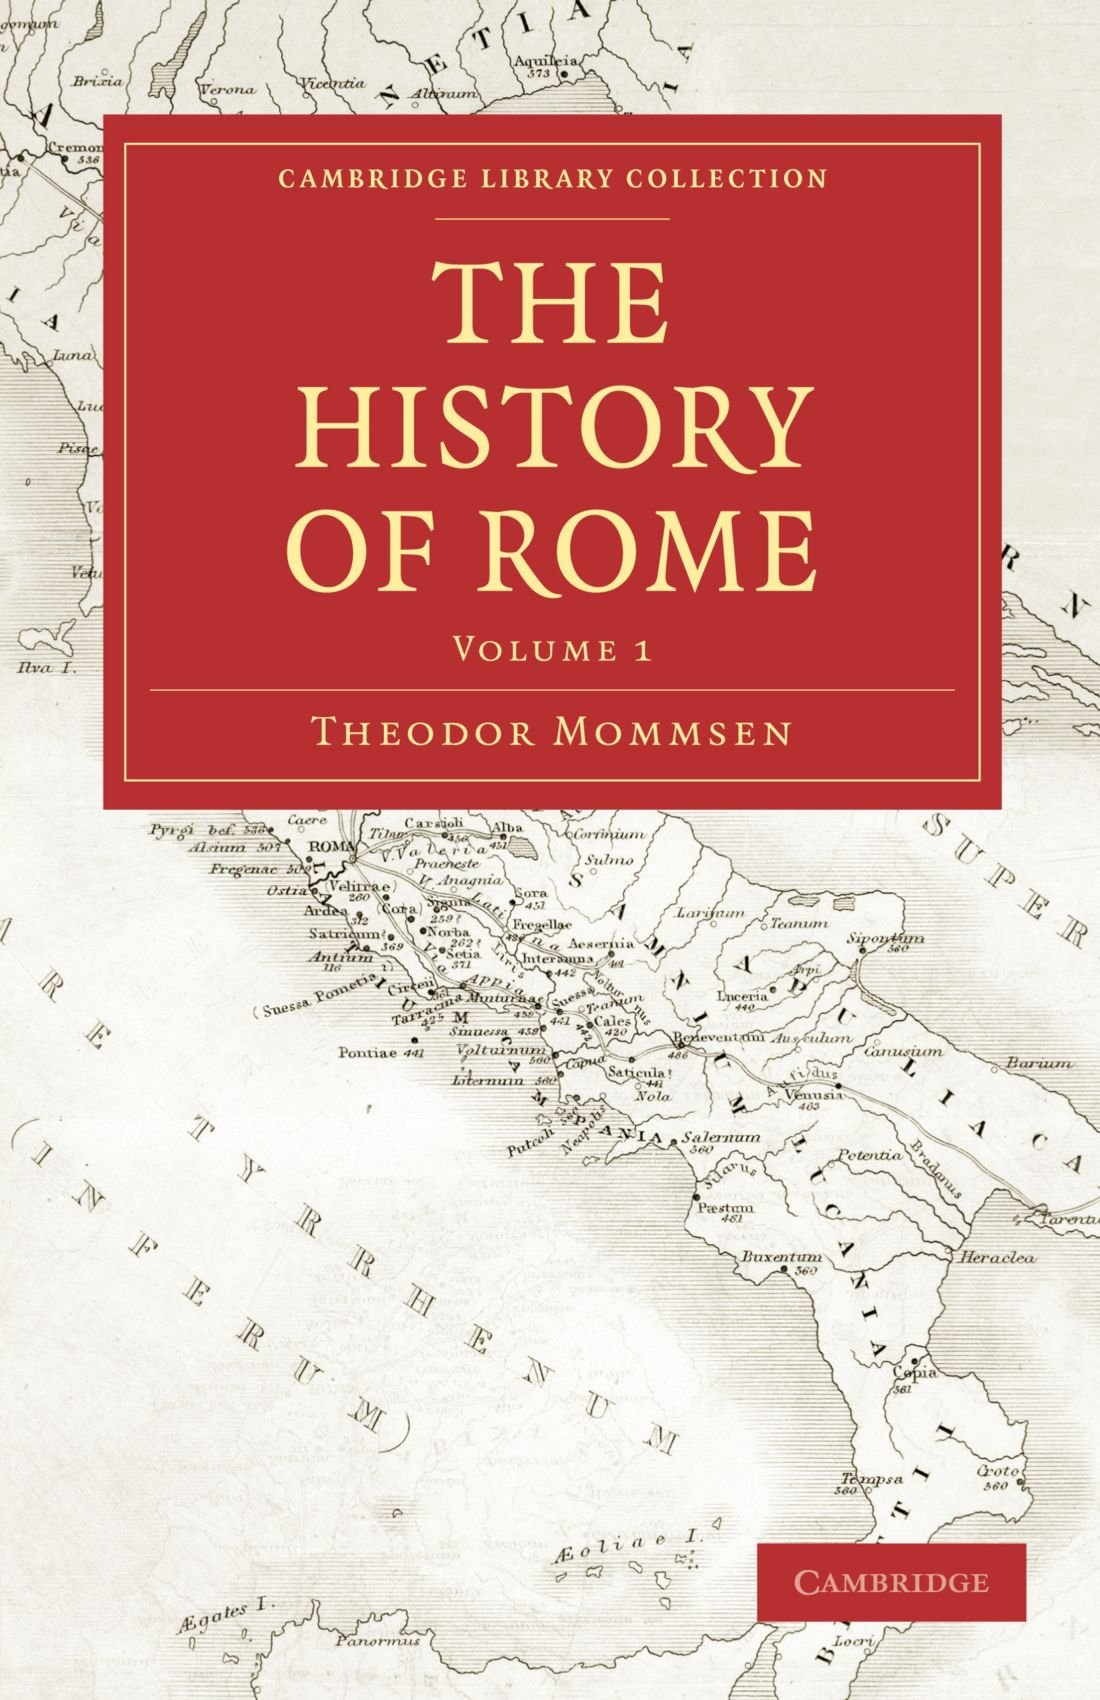 The History of Rome Volume 1